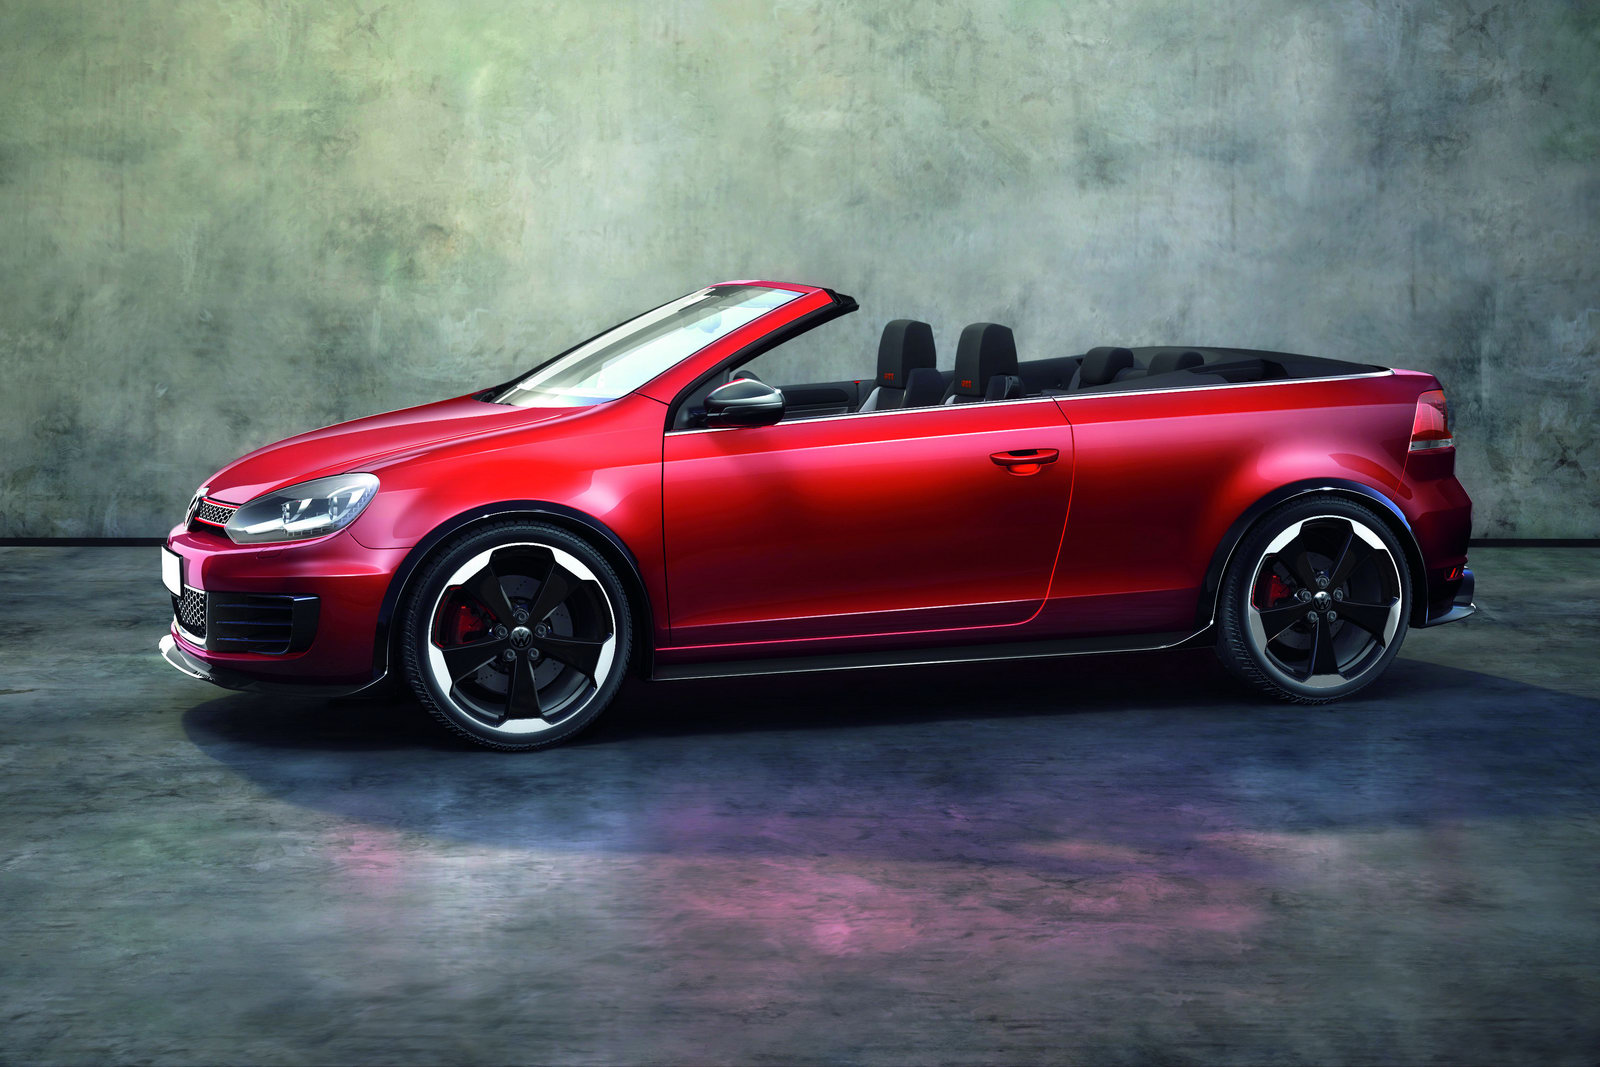 volkswagen plays with our minds golf gti cabriolet study. Black Bedroom Furniture Sets. Home Design Ideas